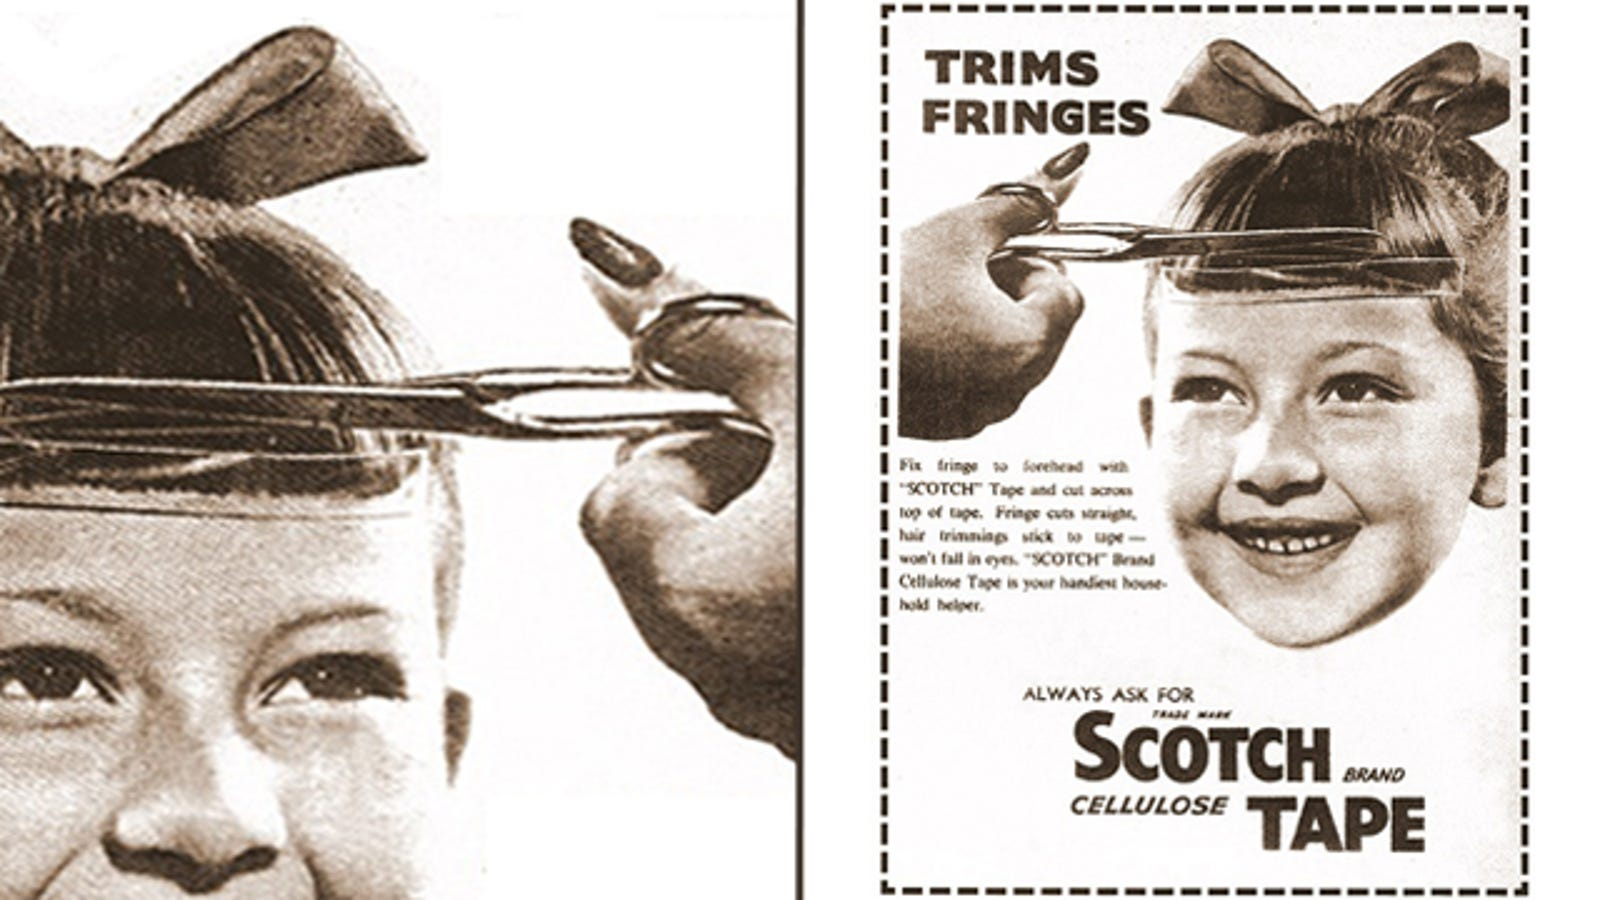 Why Not Use Scotch Tape To Trim Your Bangs